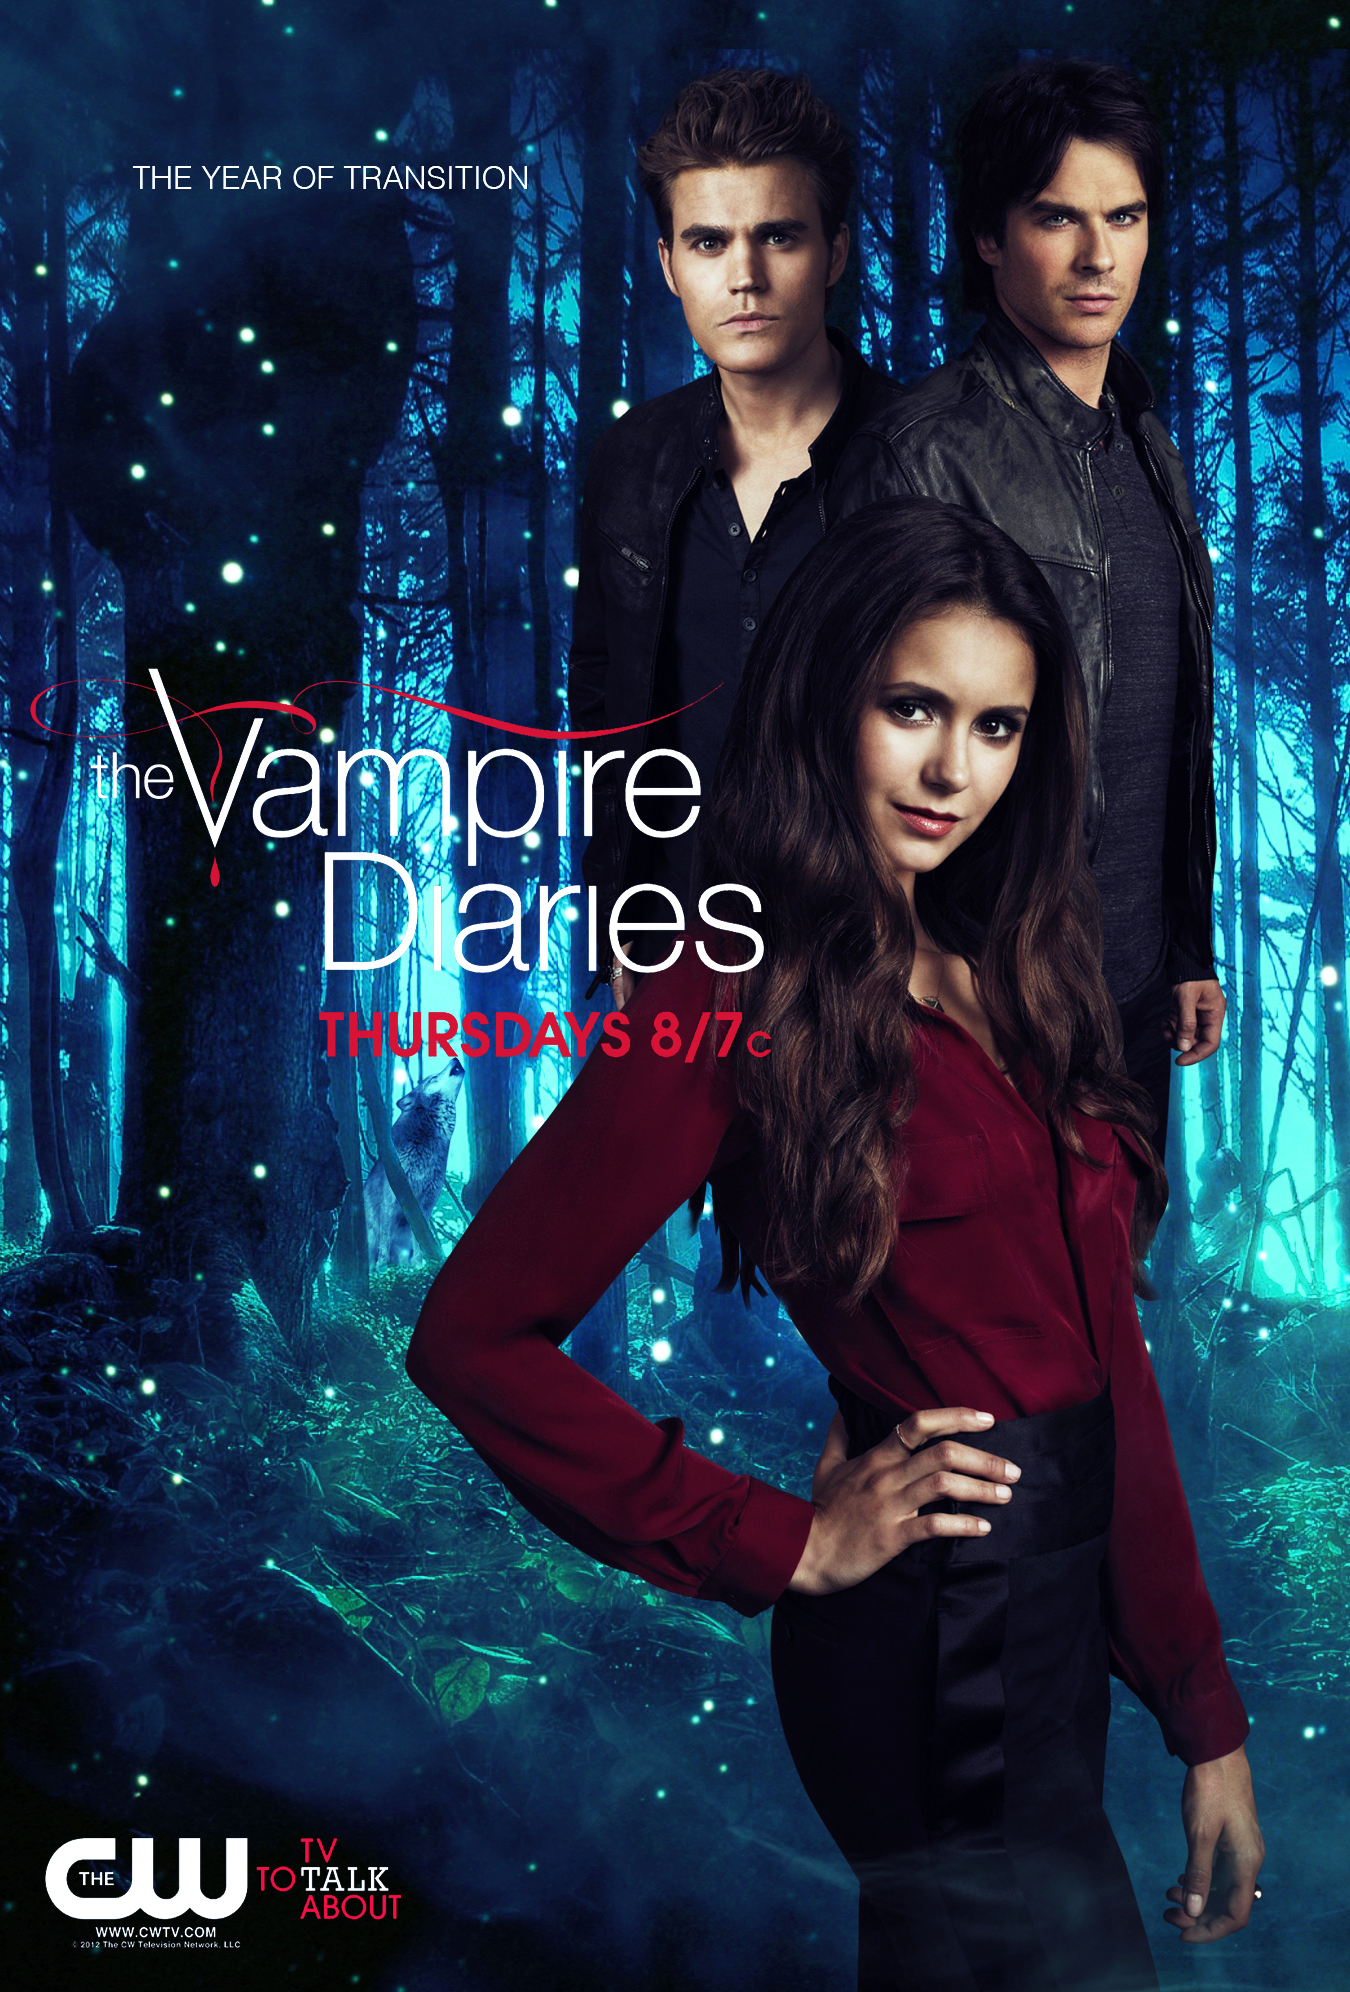 The Vampire Diaries S04E17 HDTV x264